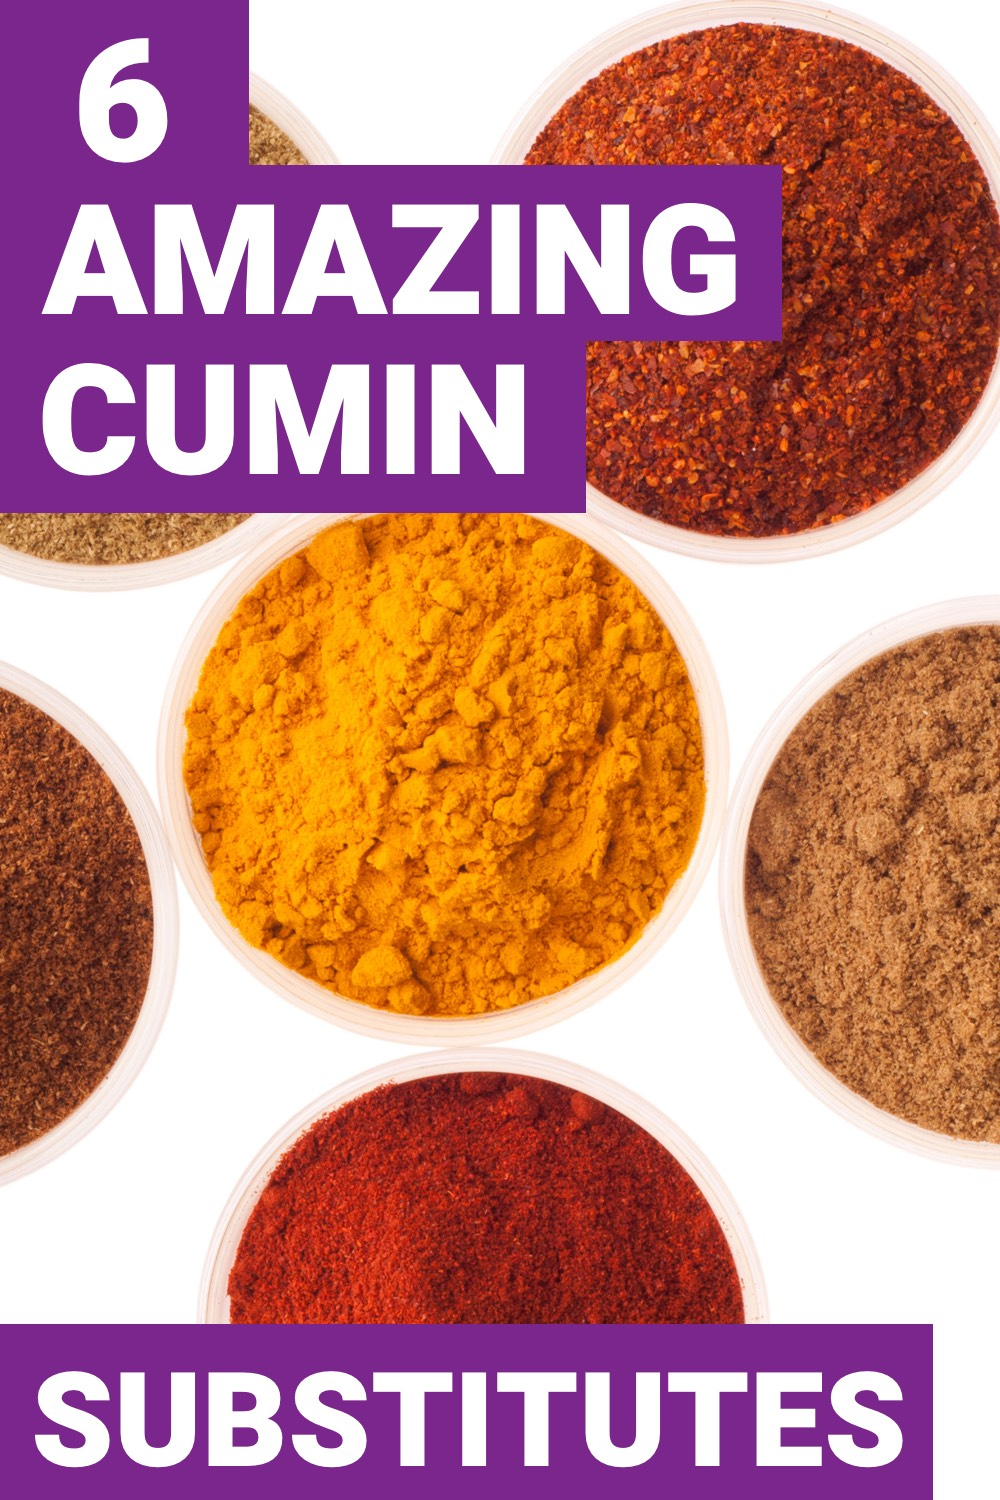 If you're looking through your spice rack for cumin and don't have any, no need to panic. Here are 6 cumin substitutes.